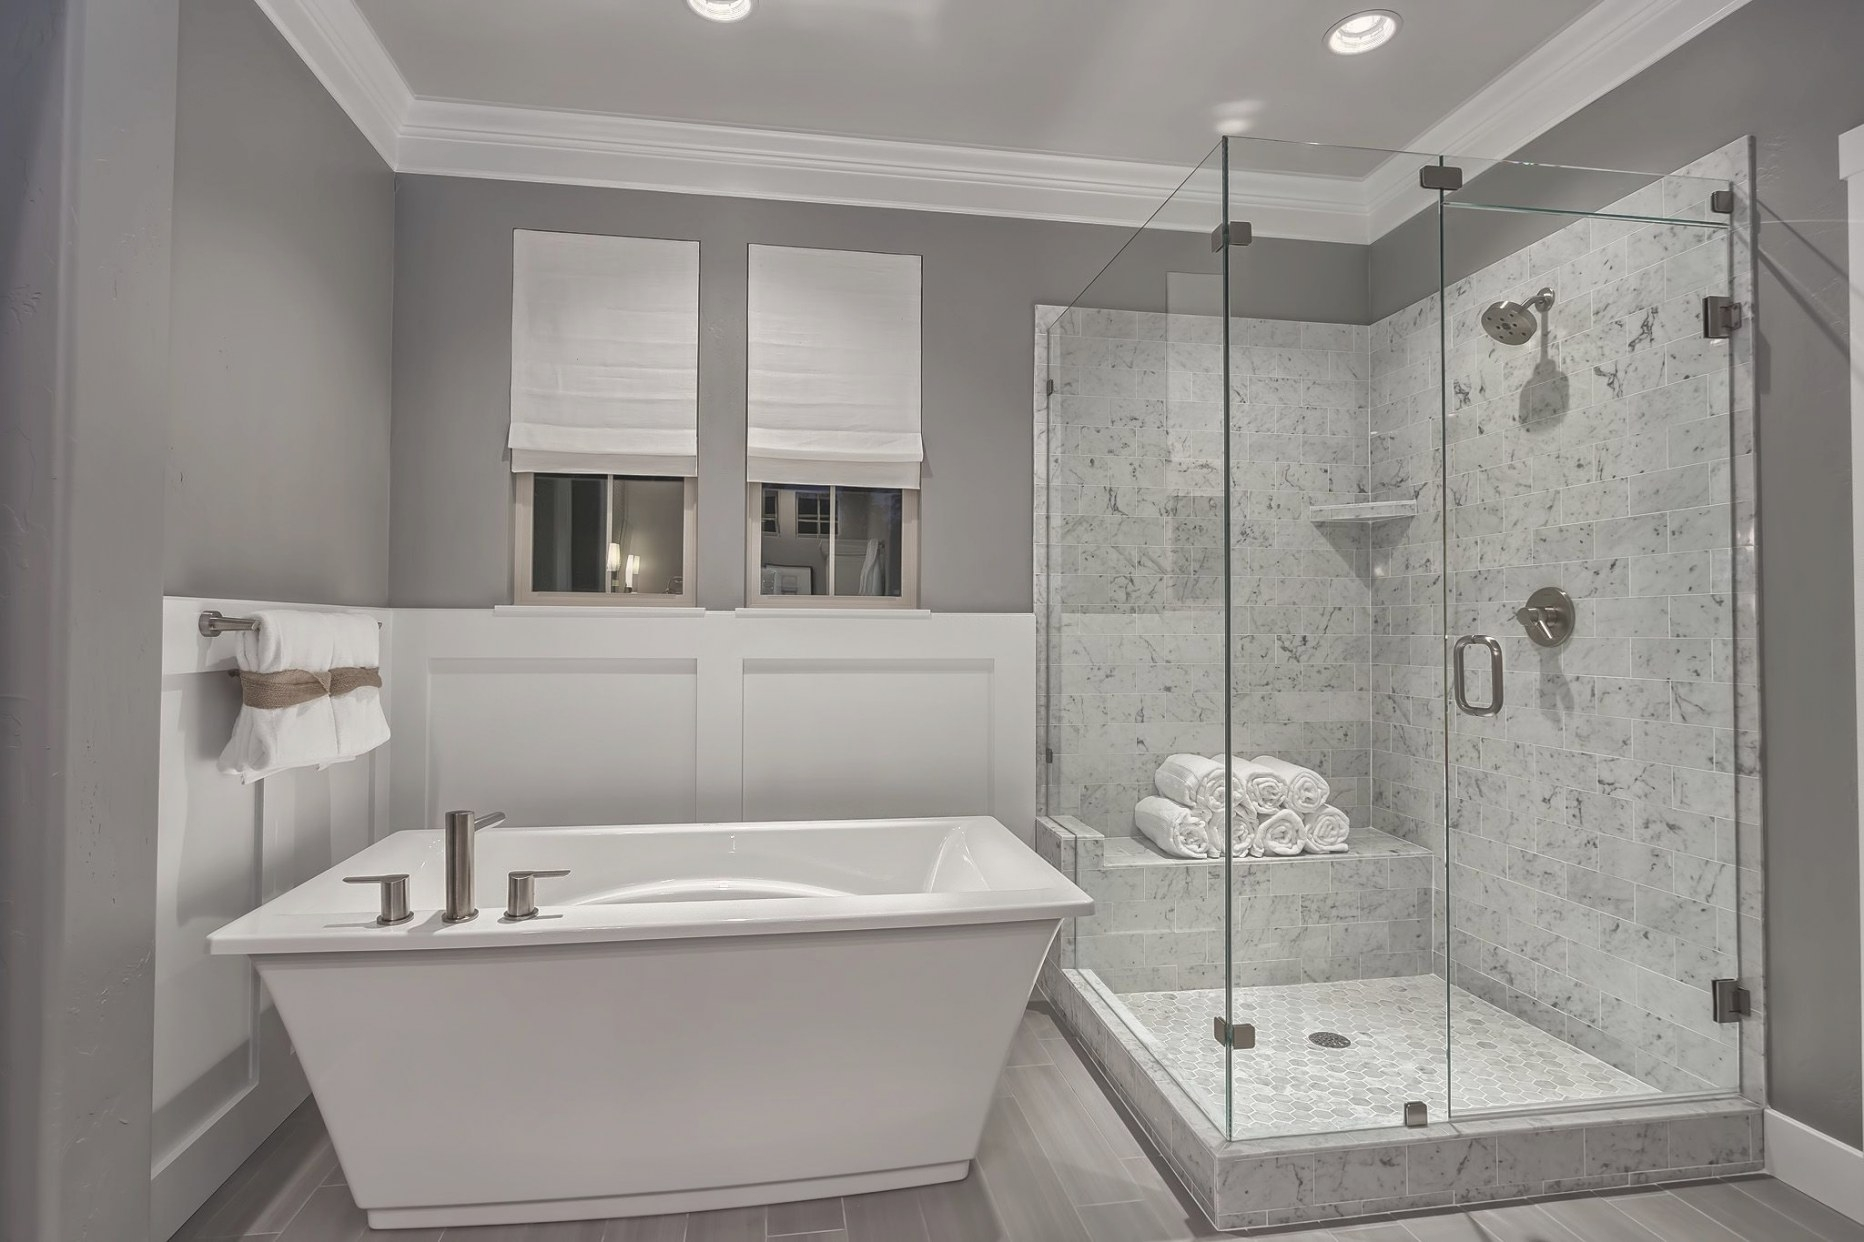 Free Standing Tub With Wainscoting Accentuate The Stone for Free Standing Tub Shower